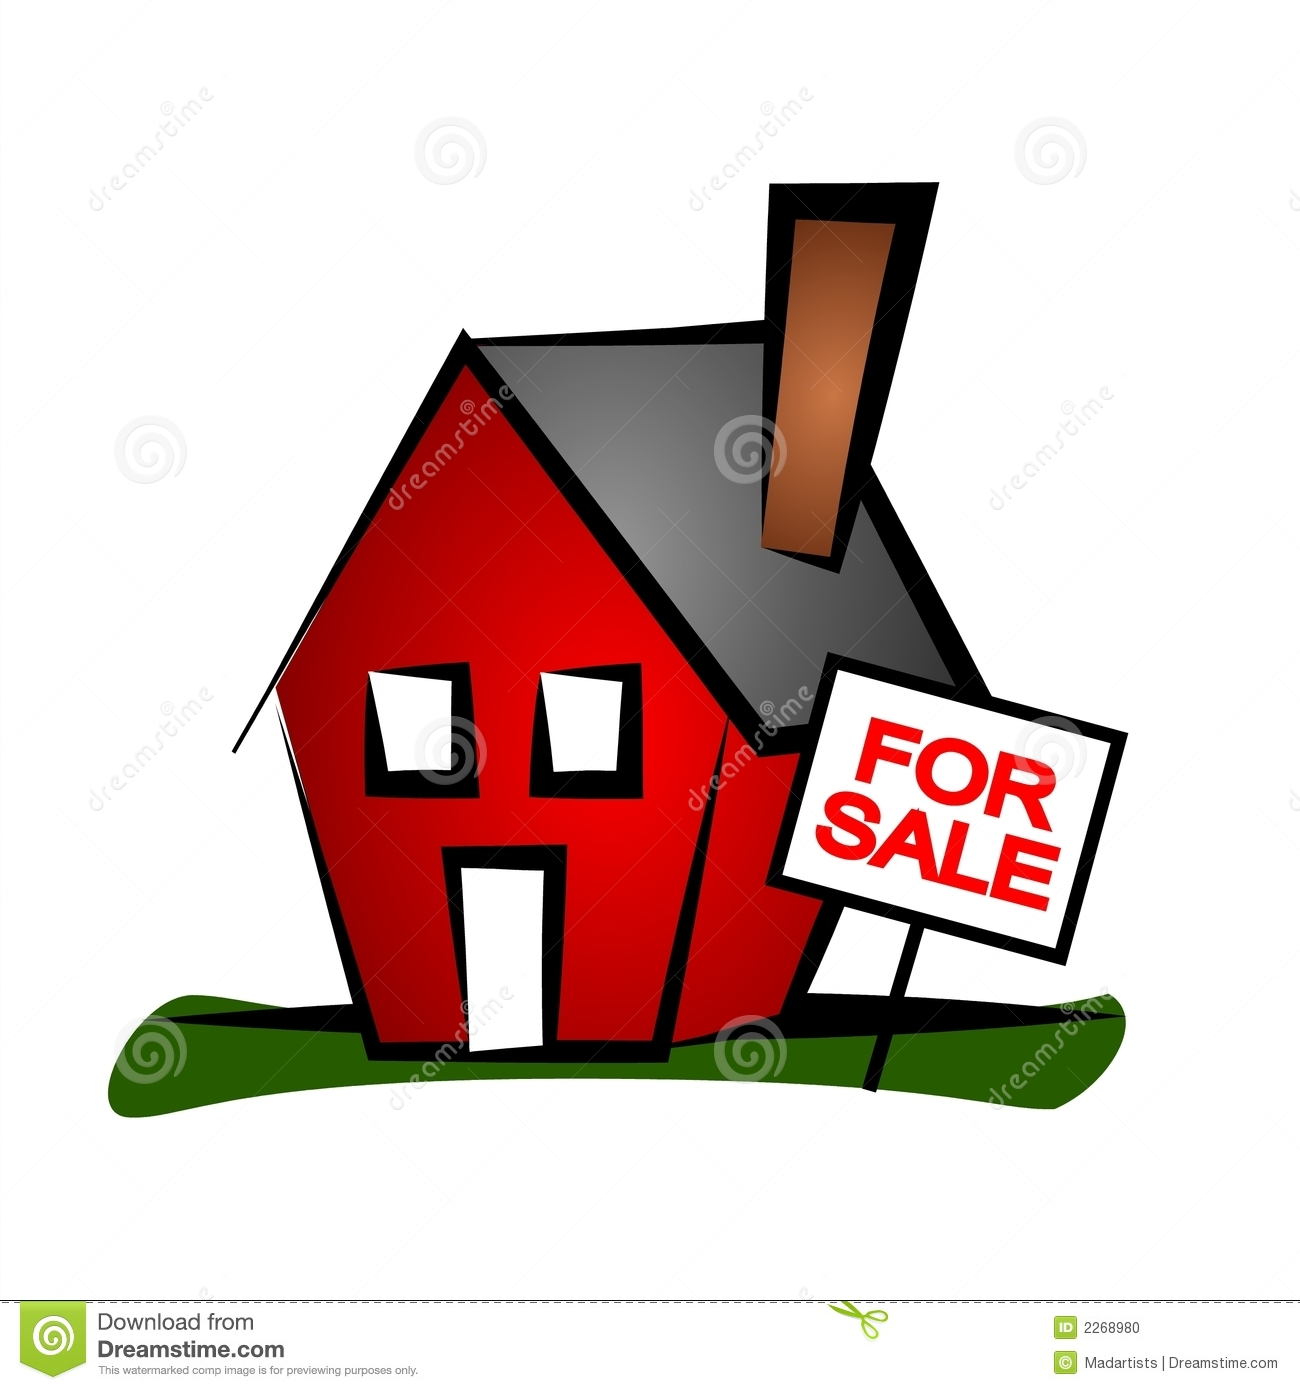 Clipart real estate agent. Sign kid clip art